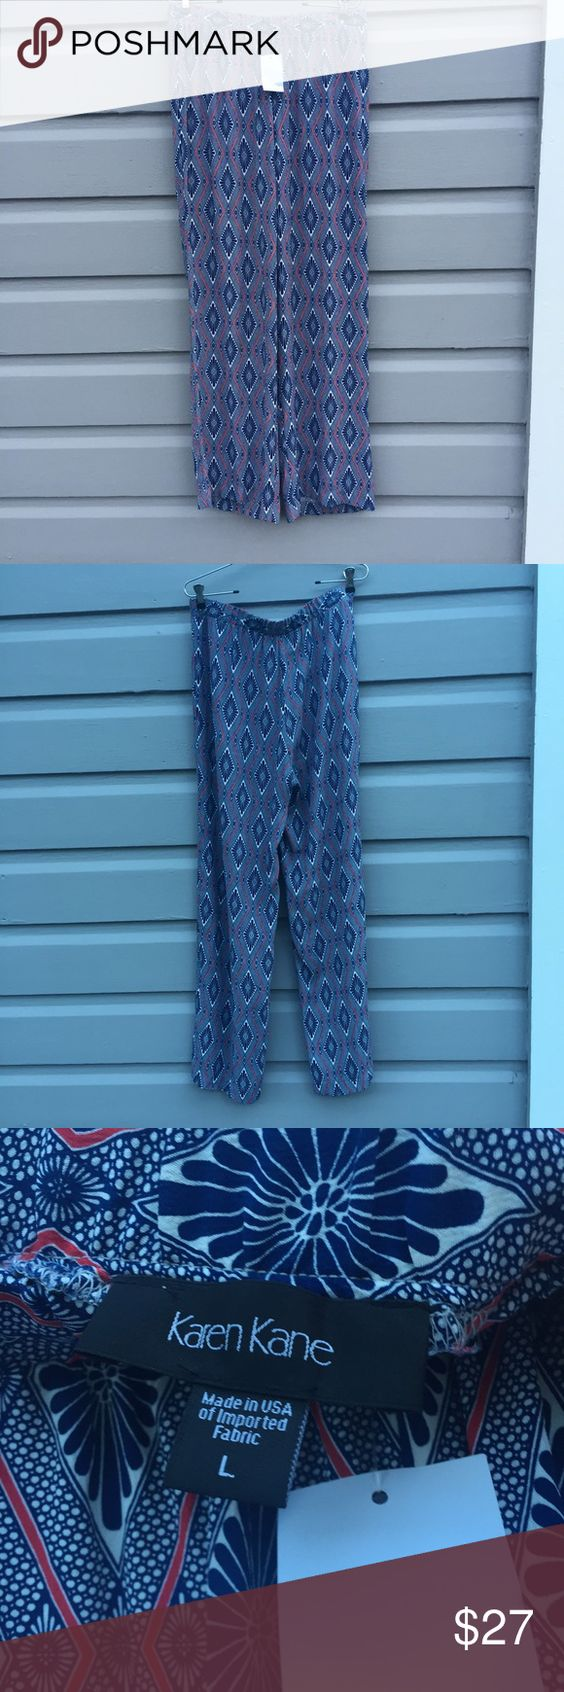 Karen Kane new large palazzo pants Brand new with tags size large loose fit palazzo pants by Karen Kane. Boho at its best; comfy yet stylish with an easy fit that flatters any figure. Bought at Nordstrom but never wore. Nordstrom Pants Wide Leg